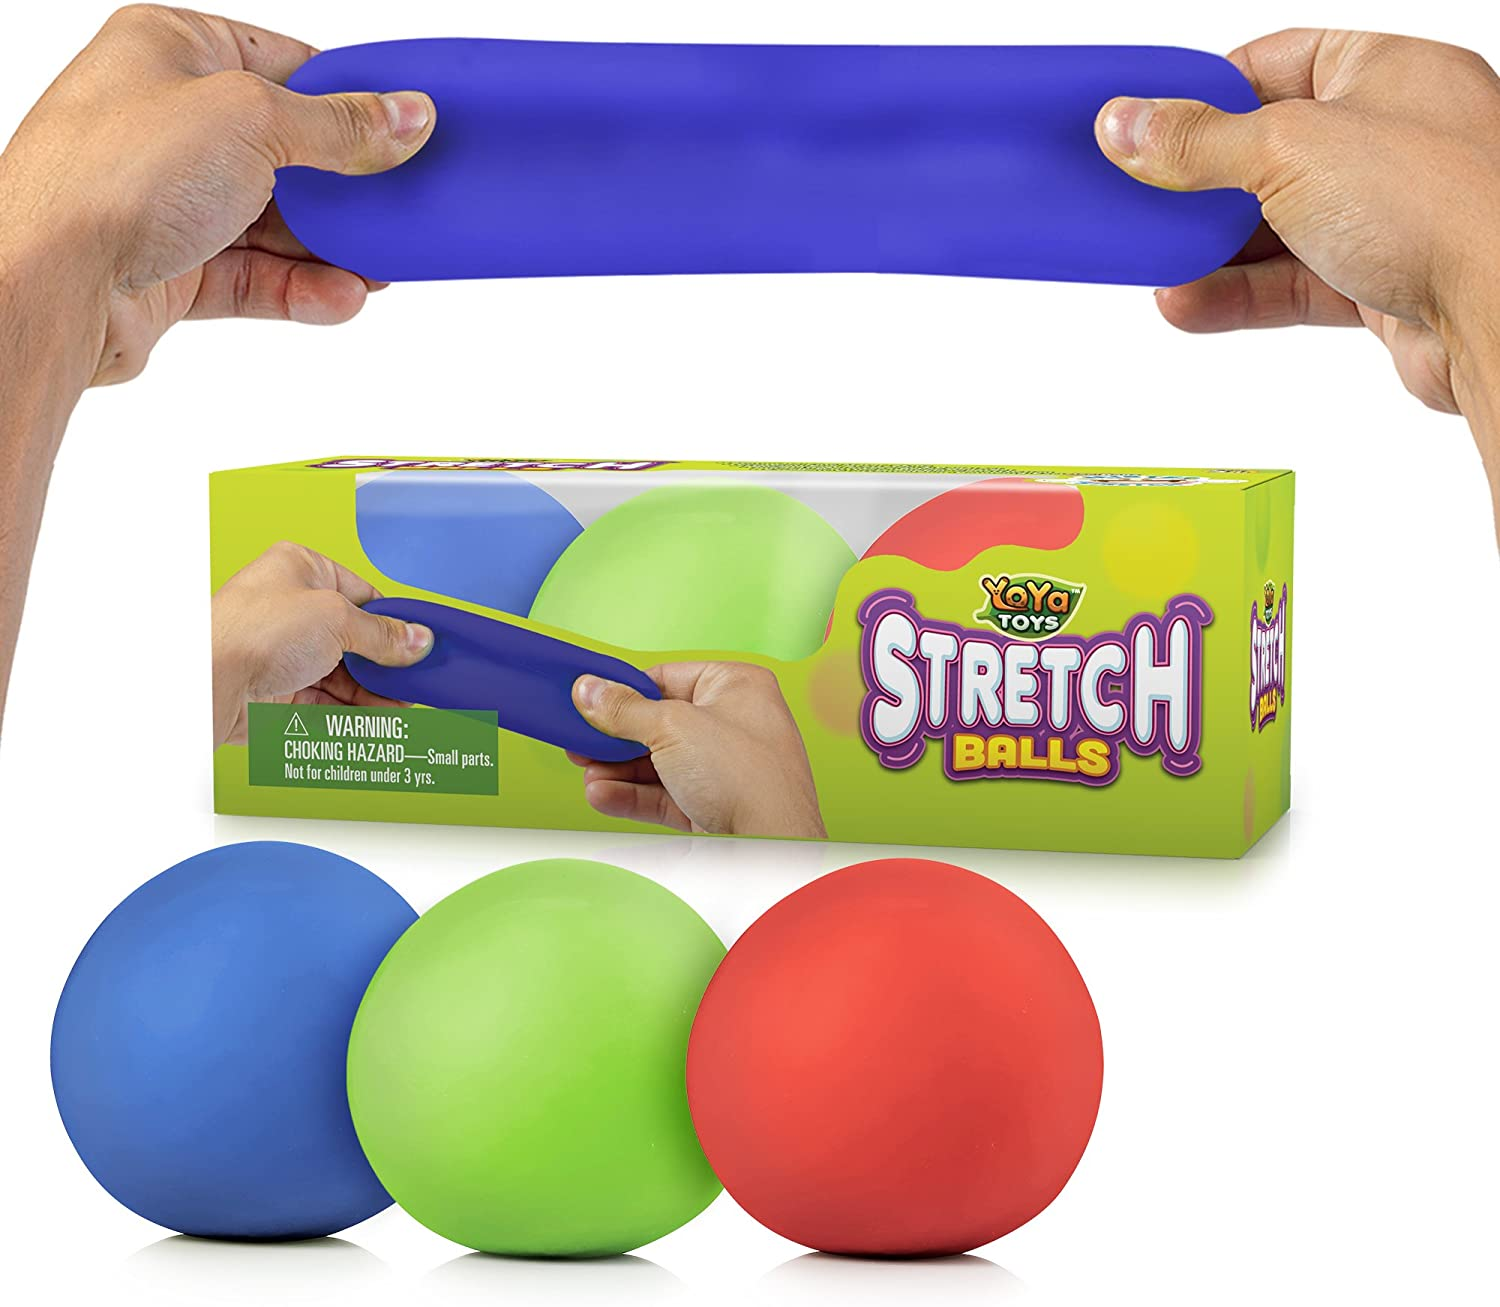 Pull Stretch and Squeeze Stress Challenge the lowest price Balls by YoYa Omaha Mall Pack - 3 E Toys